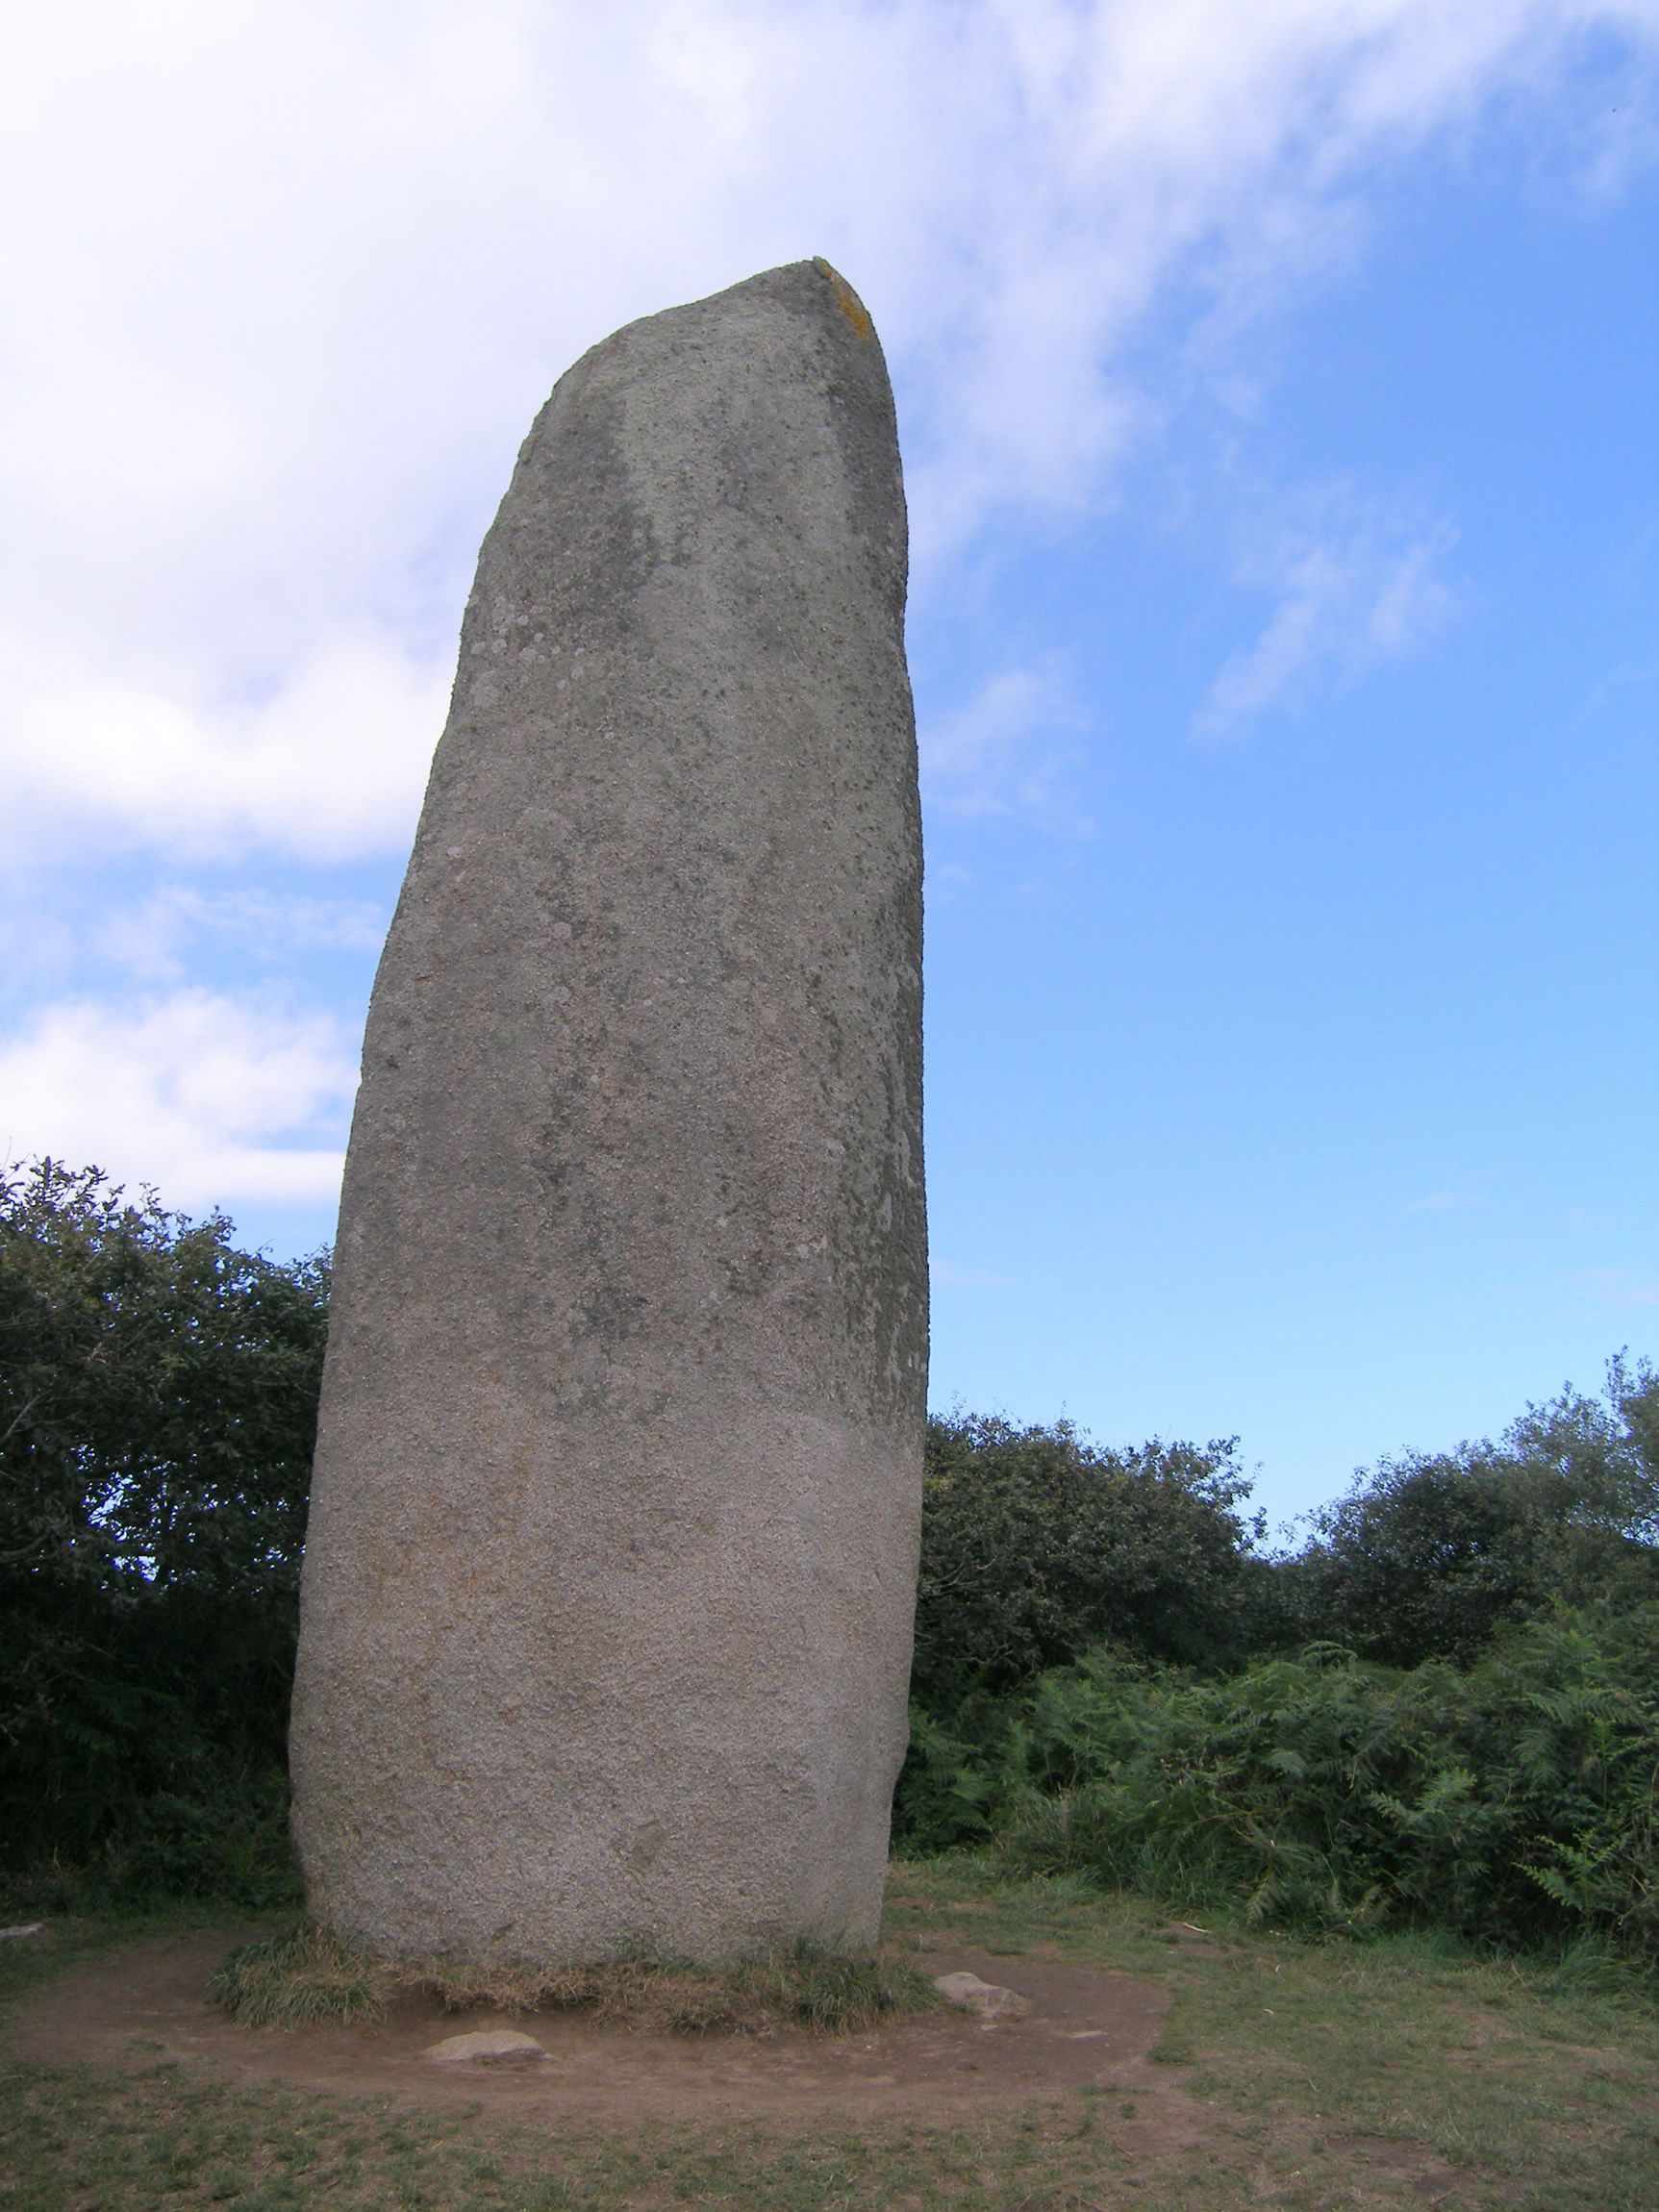 Image 2. The Kerloas Menhir, near Plouarzel in Brittany, France. With a height of 9.5 meters this menhir is the tallest standing menhir in Bretagne. A few centuries ago the top was destroyed in a thunder storm: originally it must have been over 10 meters high. (See: J. Briard: The Megaliths of Brittany). Photo by User:China_Crisis.